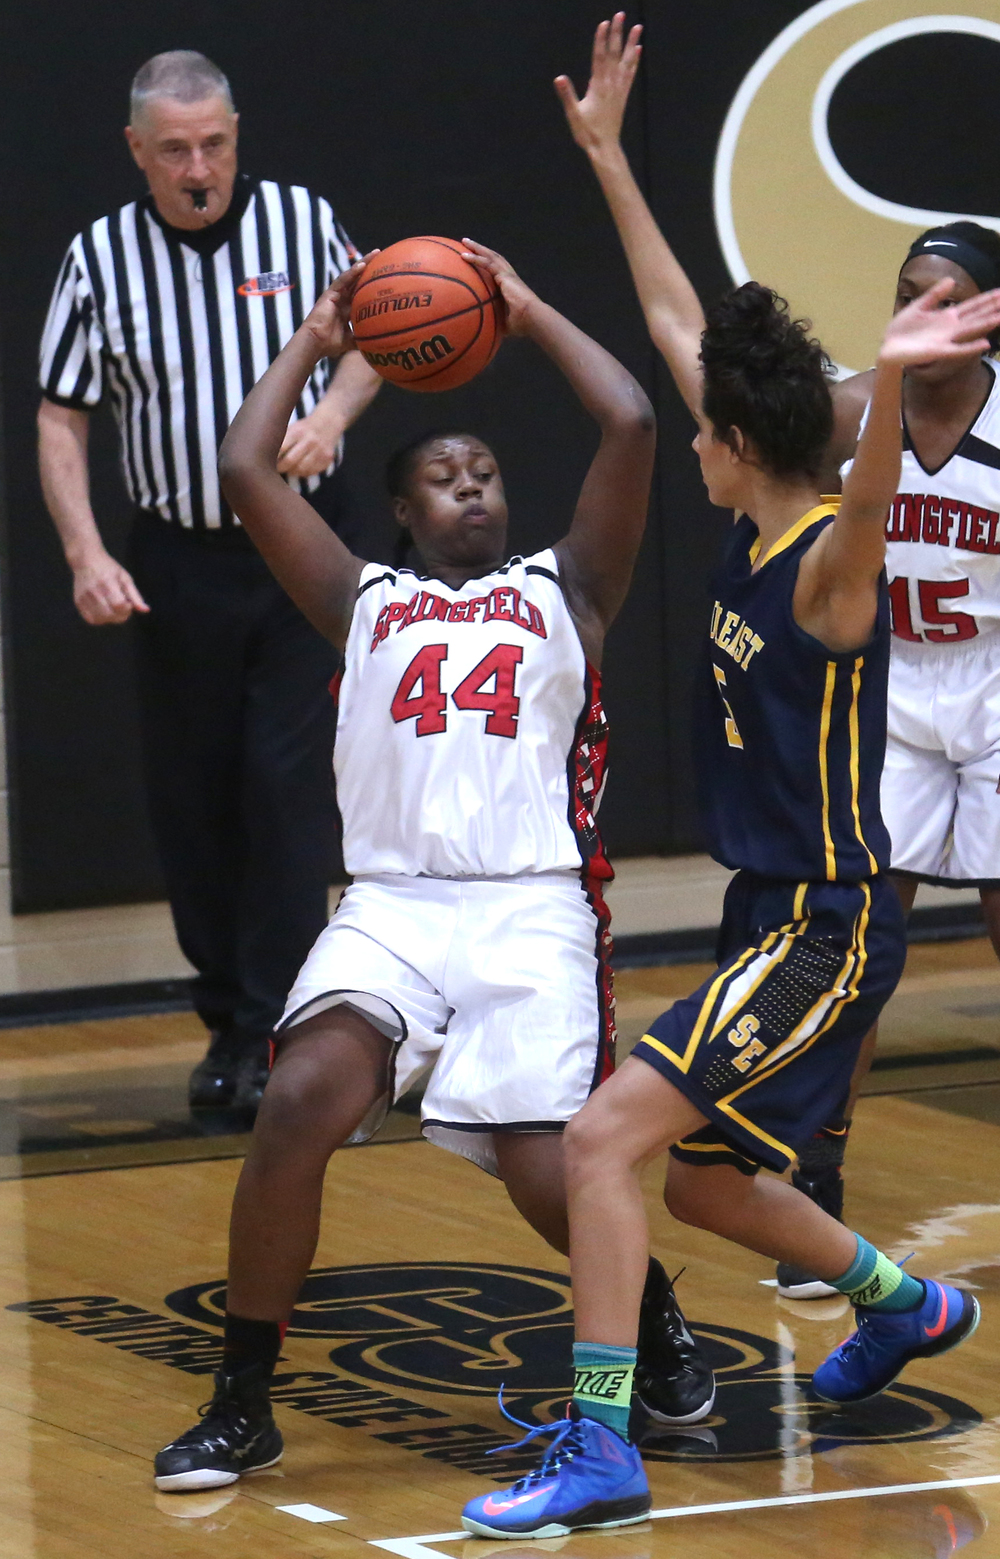 Springfield's Montshianna Pulliam tries to get around Southeast's Lunden Henry. Springfield High defeated Southeast 49-35 during second night action at the Girls City Basketball Tournament held at Belz Gym at Sacred Heart-Griffin's west campus in Springfield on Wednesday evening, Jan. 28, 2015. David Spencer/The State Journal-Register